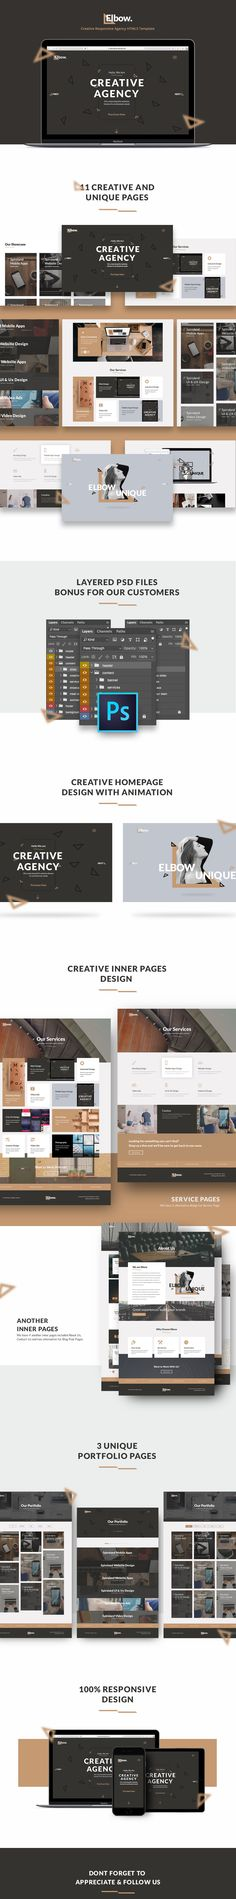 Elbow is a unique and simple template design, perfect for you digital agency. it is fully responsive and its look fabulous in Tablet, Mobile Phone, and Desktop.